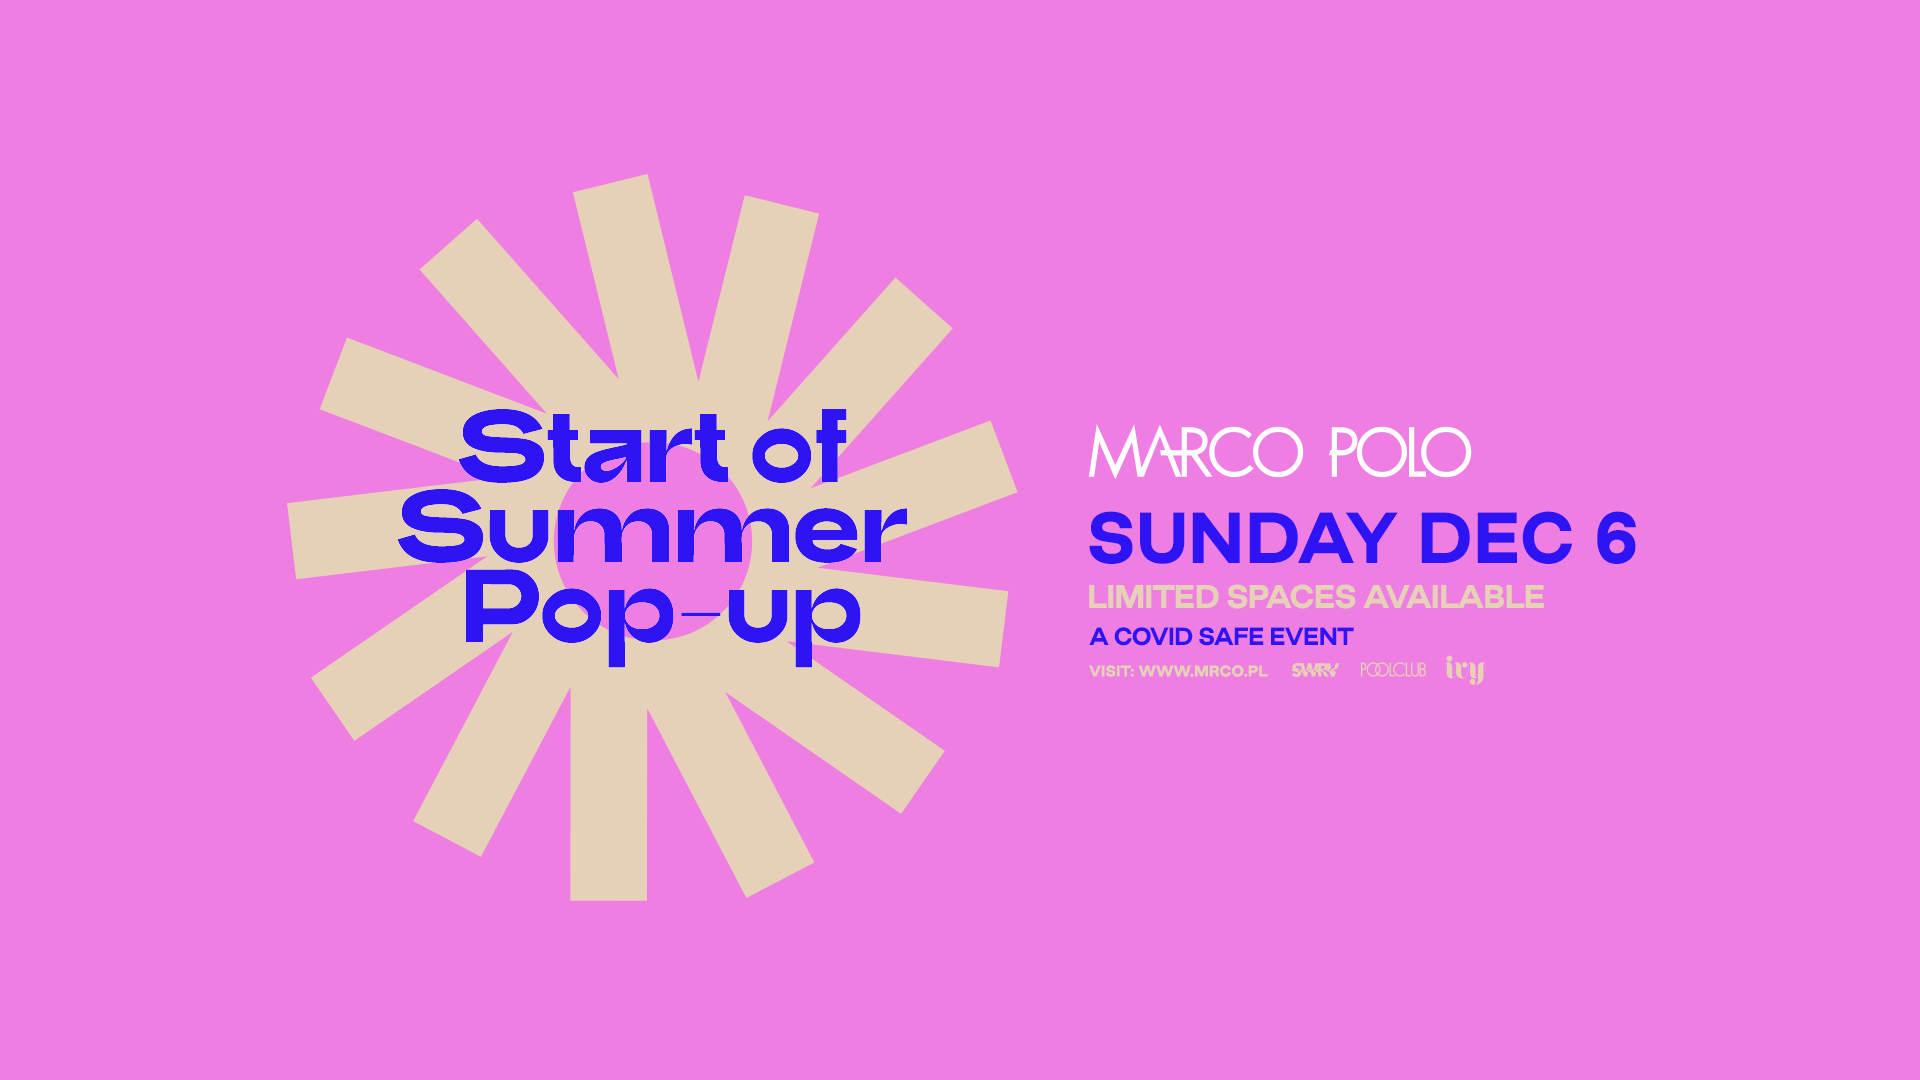 Tickets for Marco Polo - January 27 in Sydney from Merivale